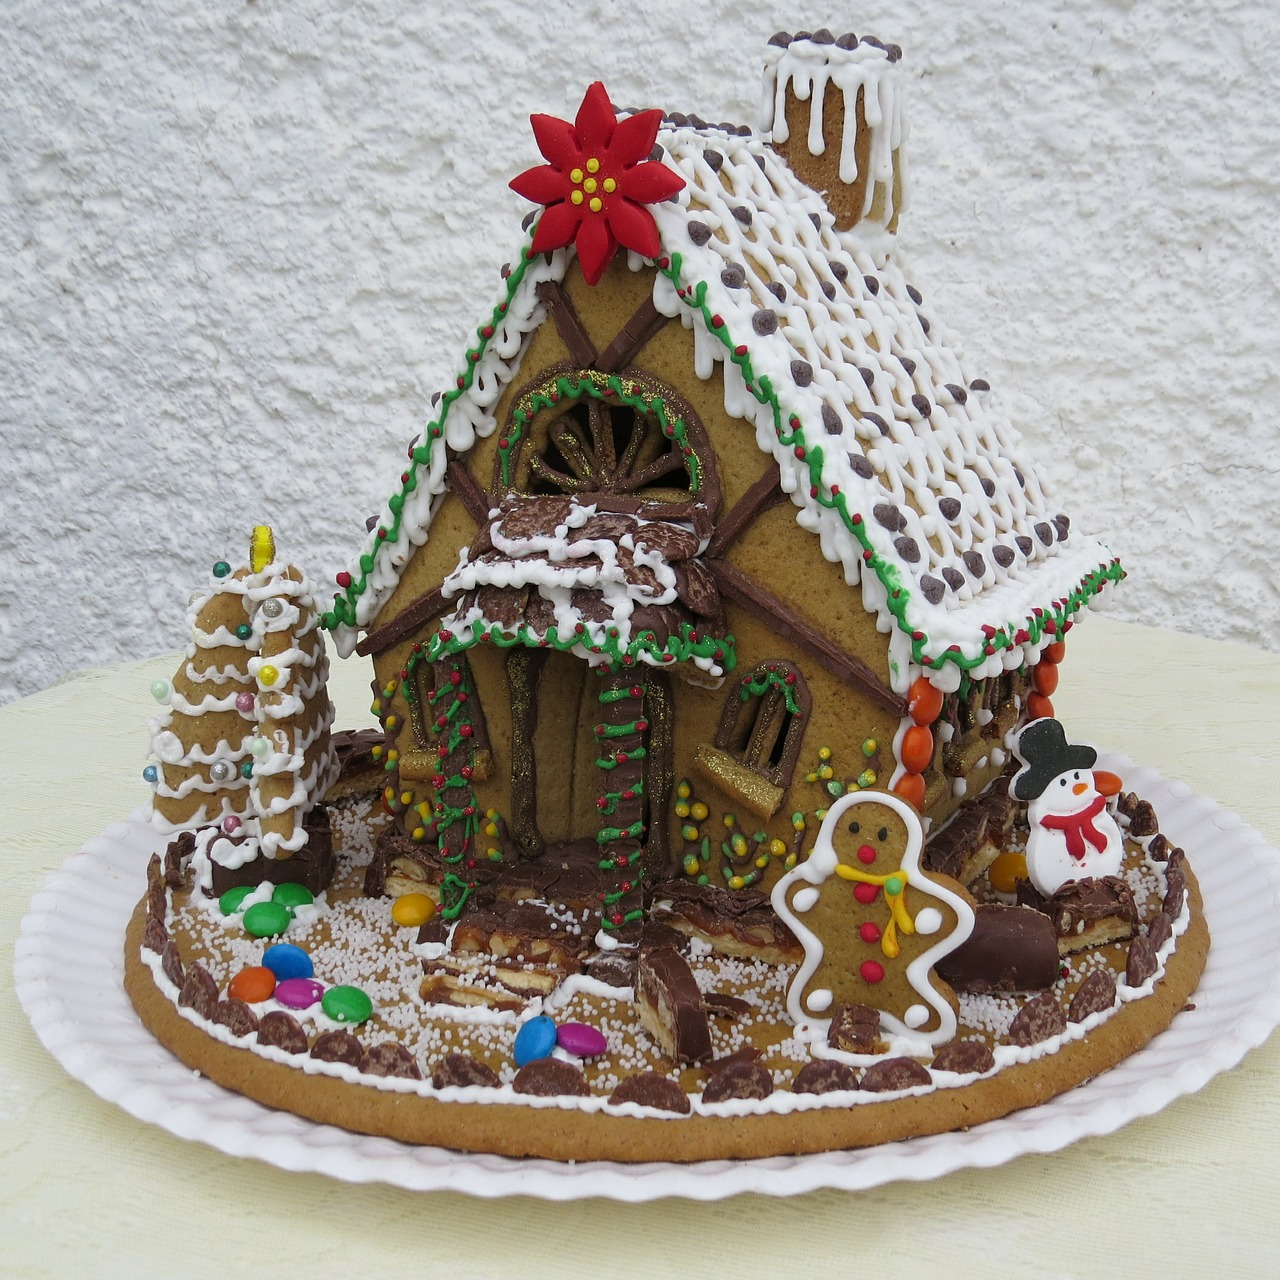 Creative DIY Candy Decorations And Gingerbread Houses To ...